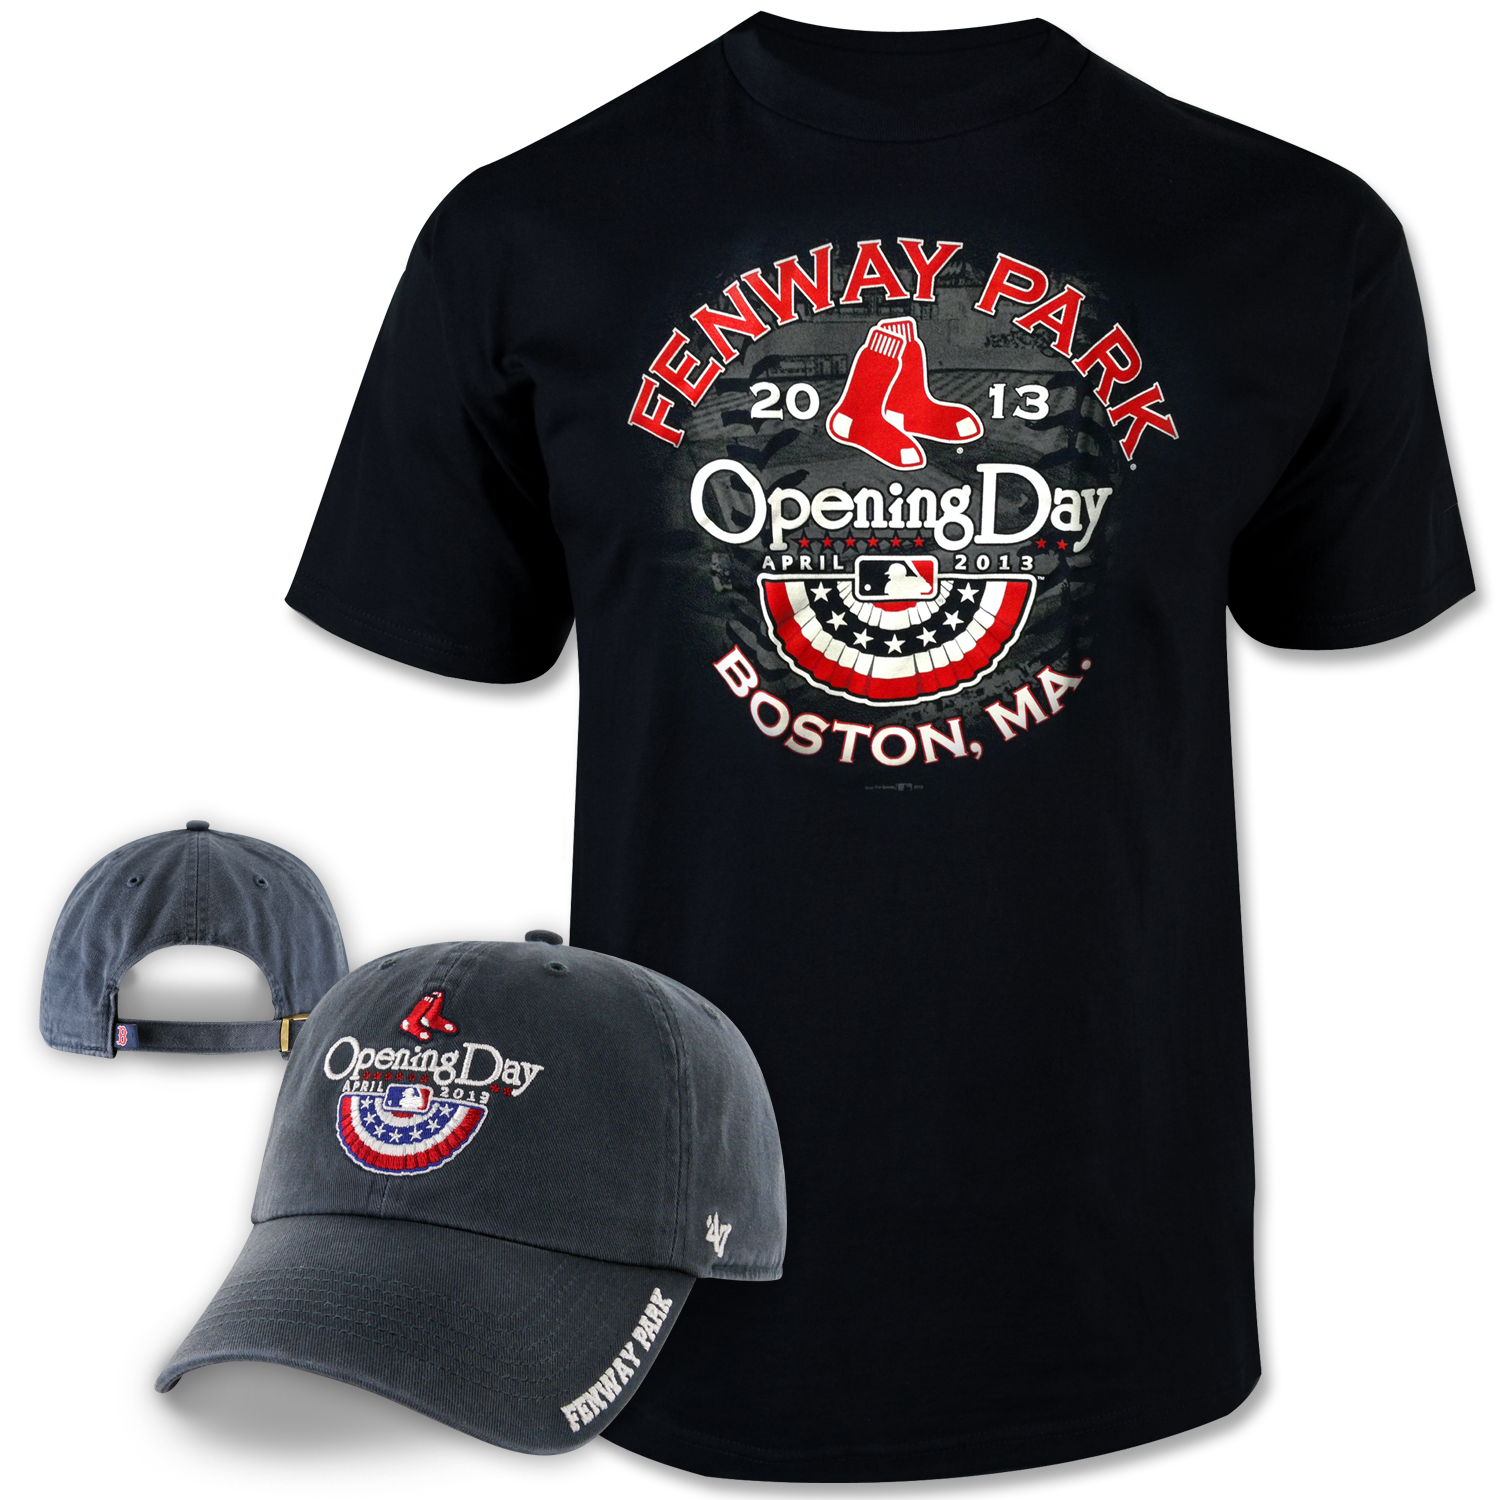 2013 Opening Day Pack OD2013